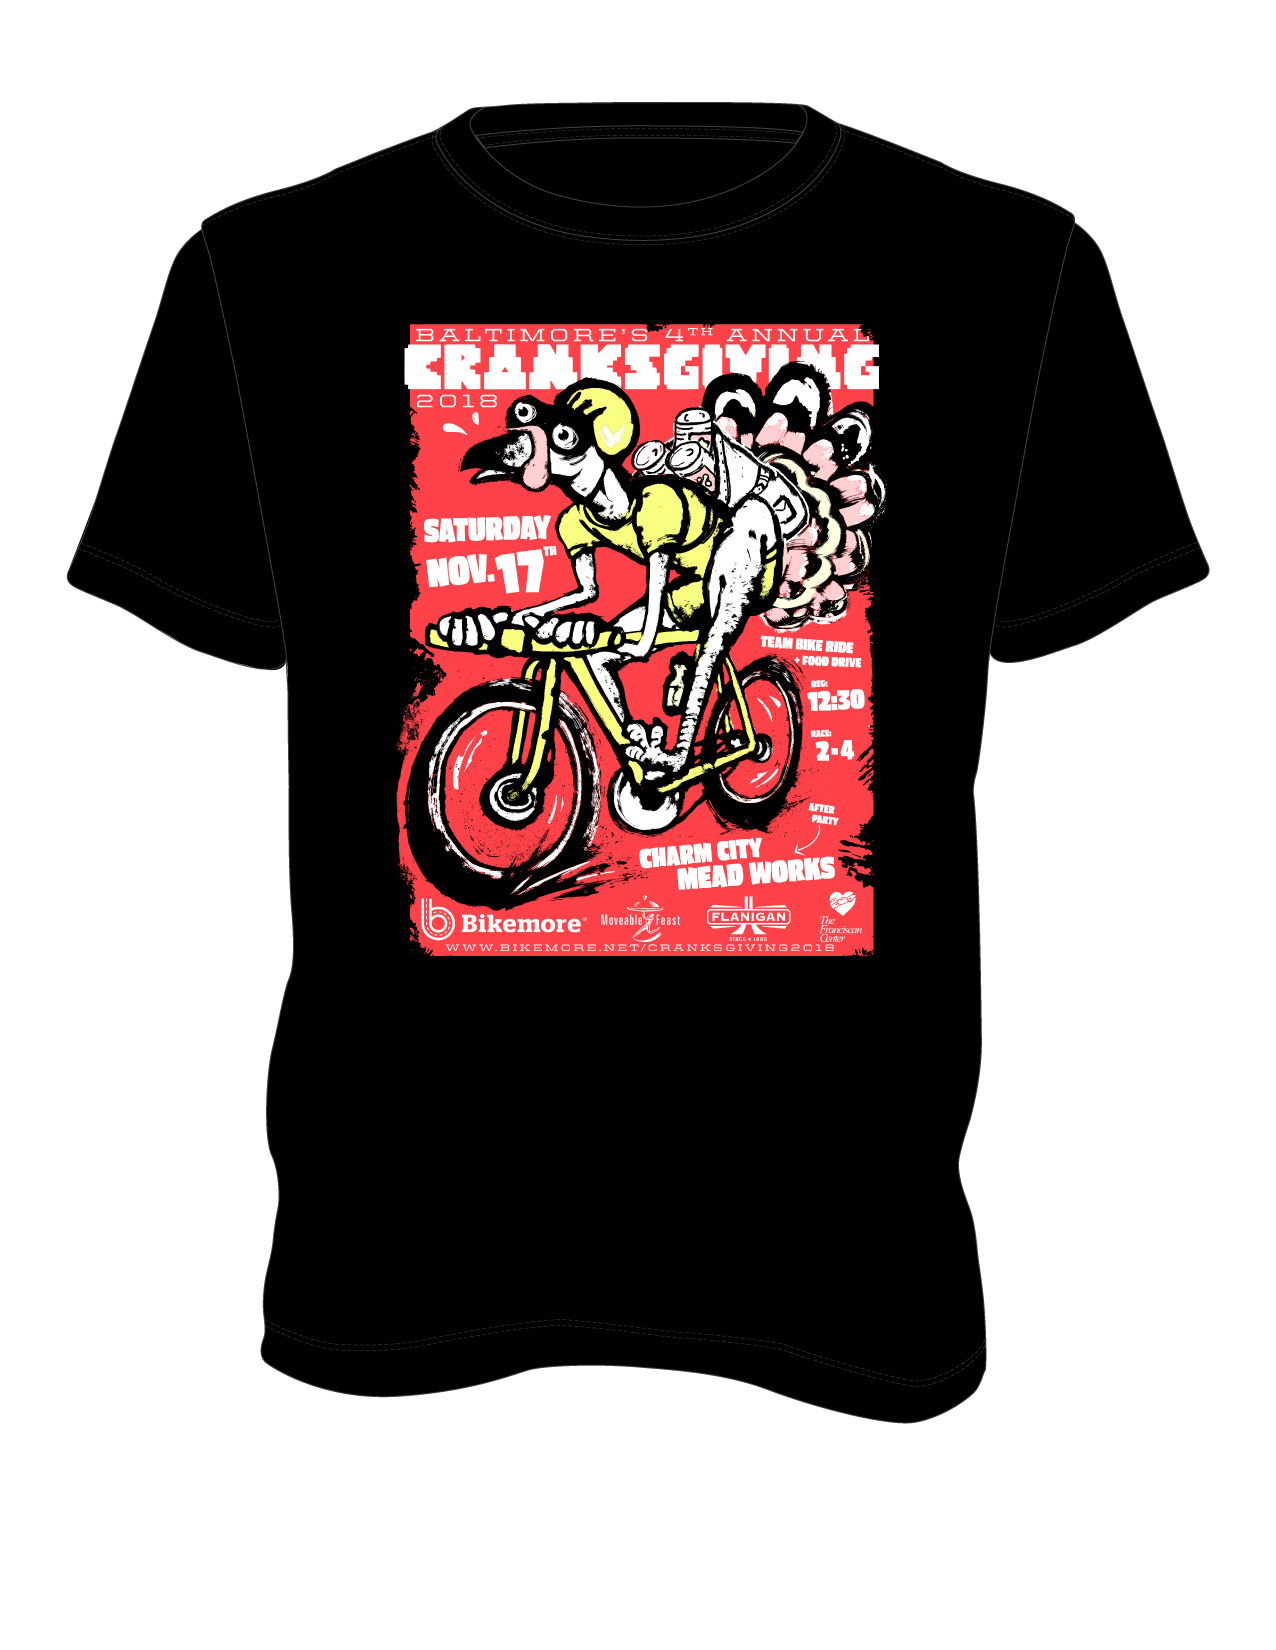 cranksgiving2018 Tshirt mockup option1_we bleed gold FF (2).jpg